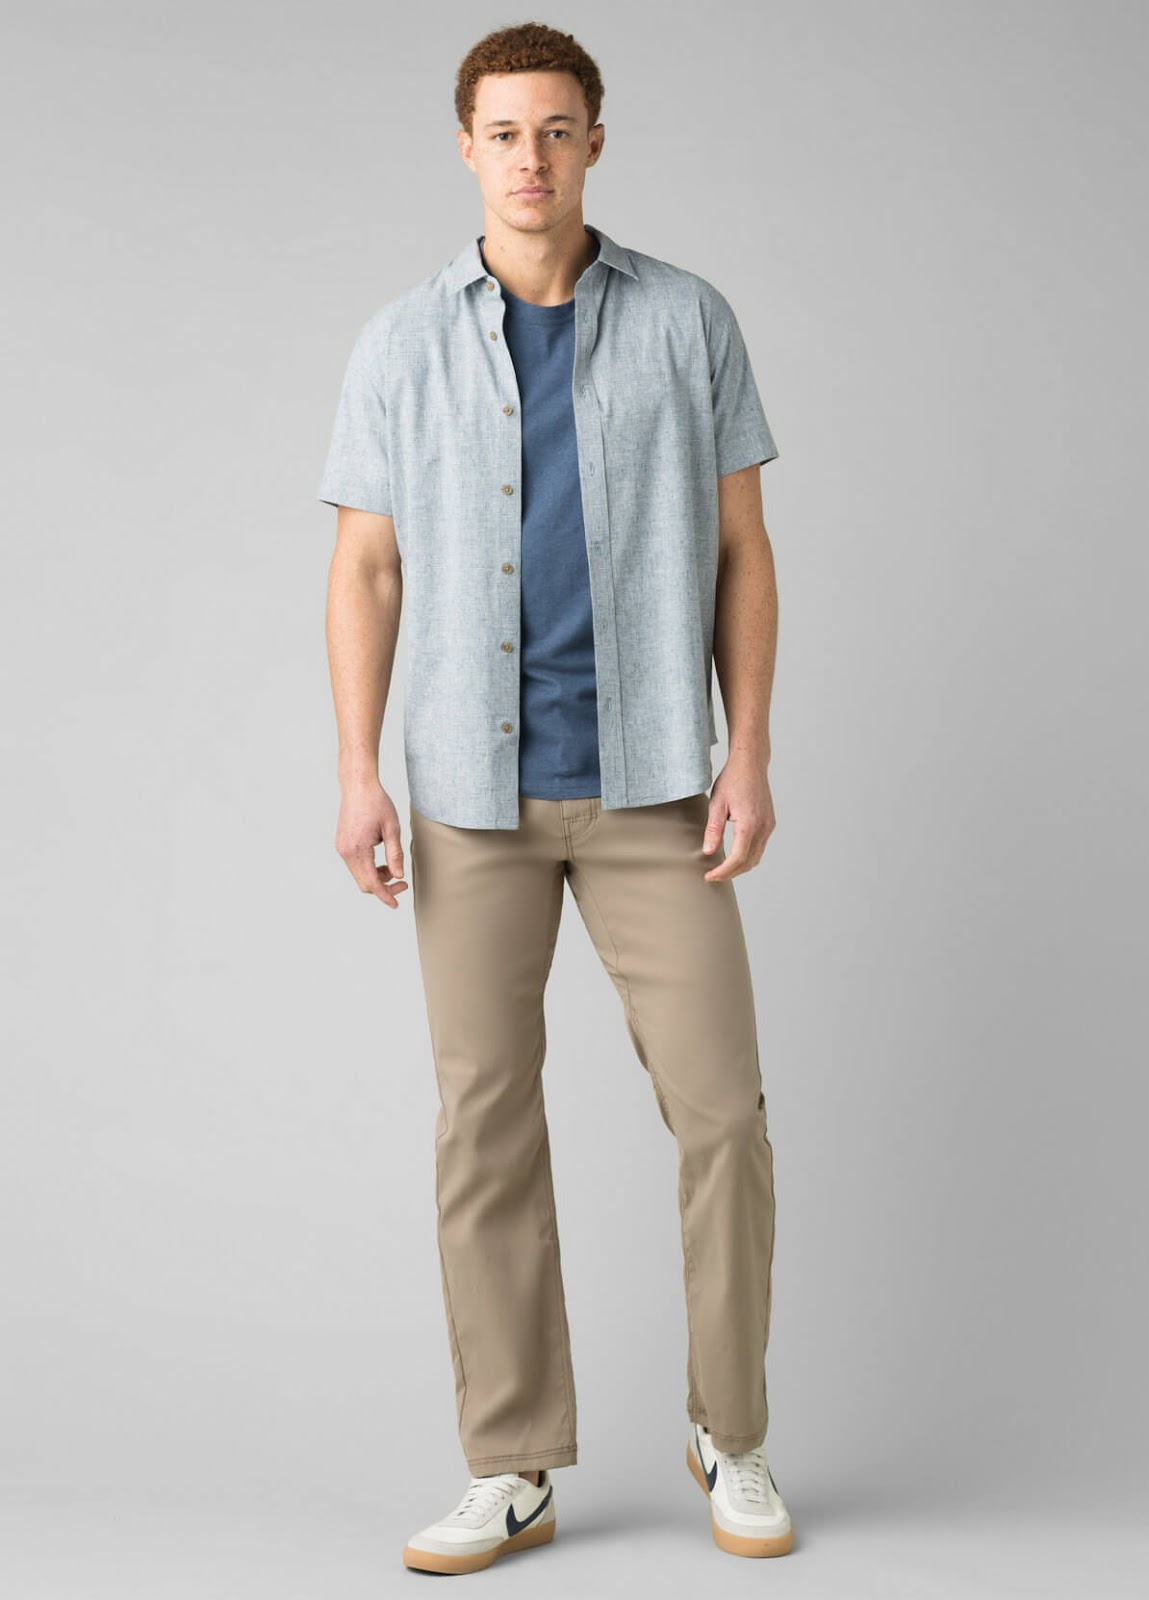 14. Prana Brion Pant